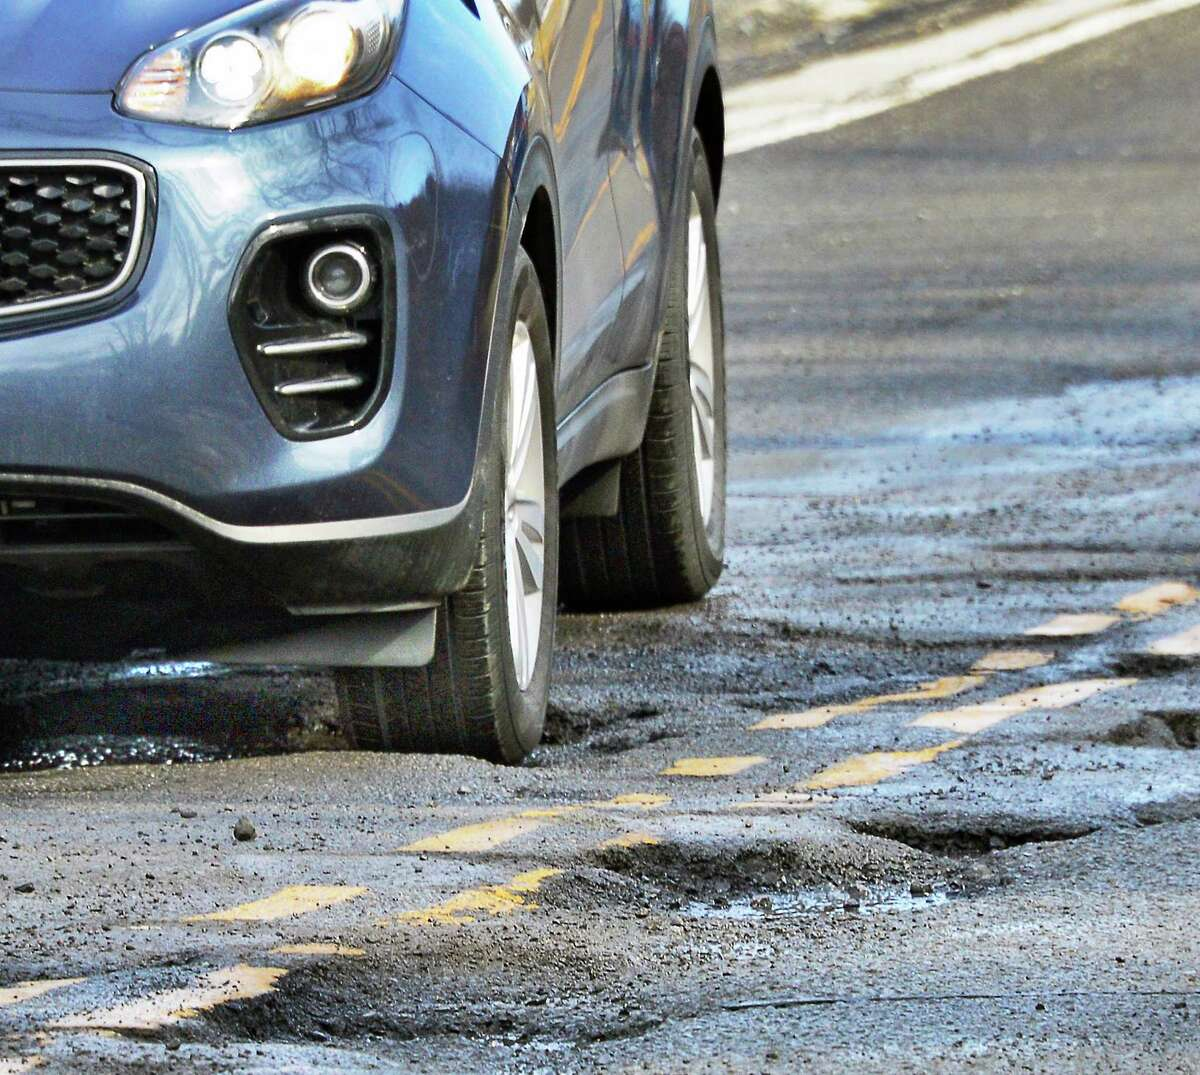 A car navigates through potholes on Hackett Boulevard between Holland Ave. and Crown Terrace Tuesday Feb. 20, 2018 in Albany, NY. (John Carl D'Annibale/Times Union)